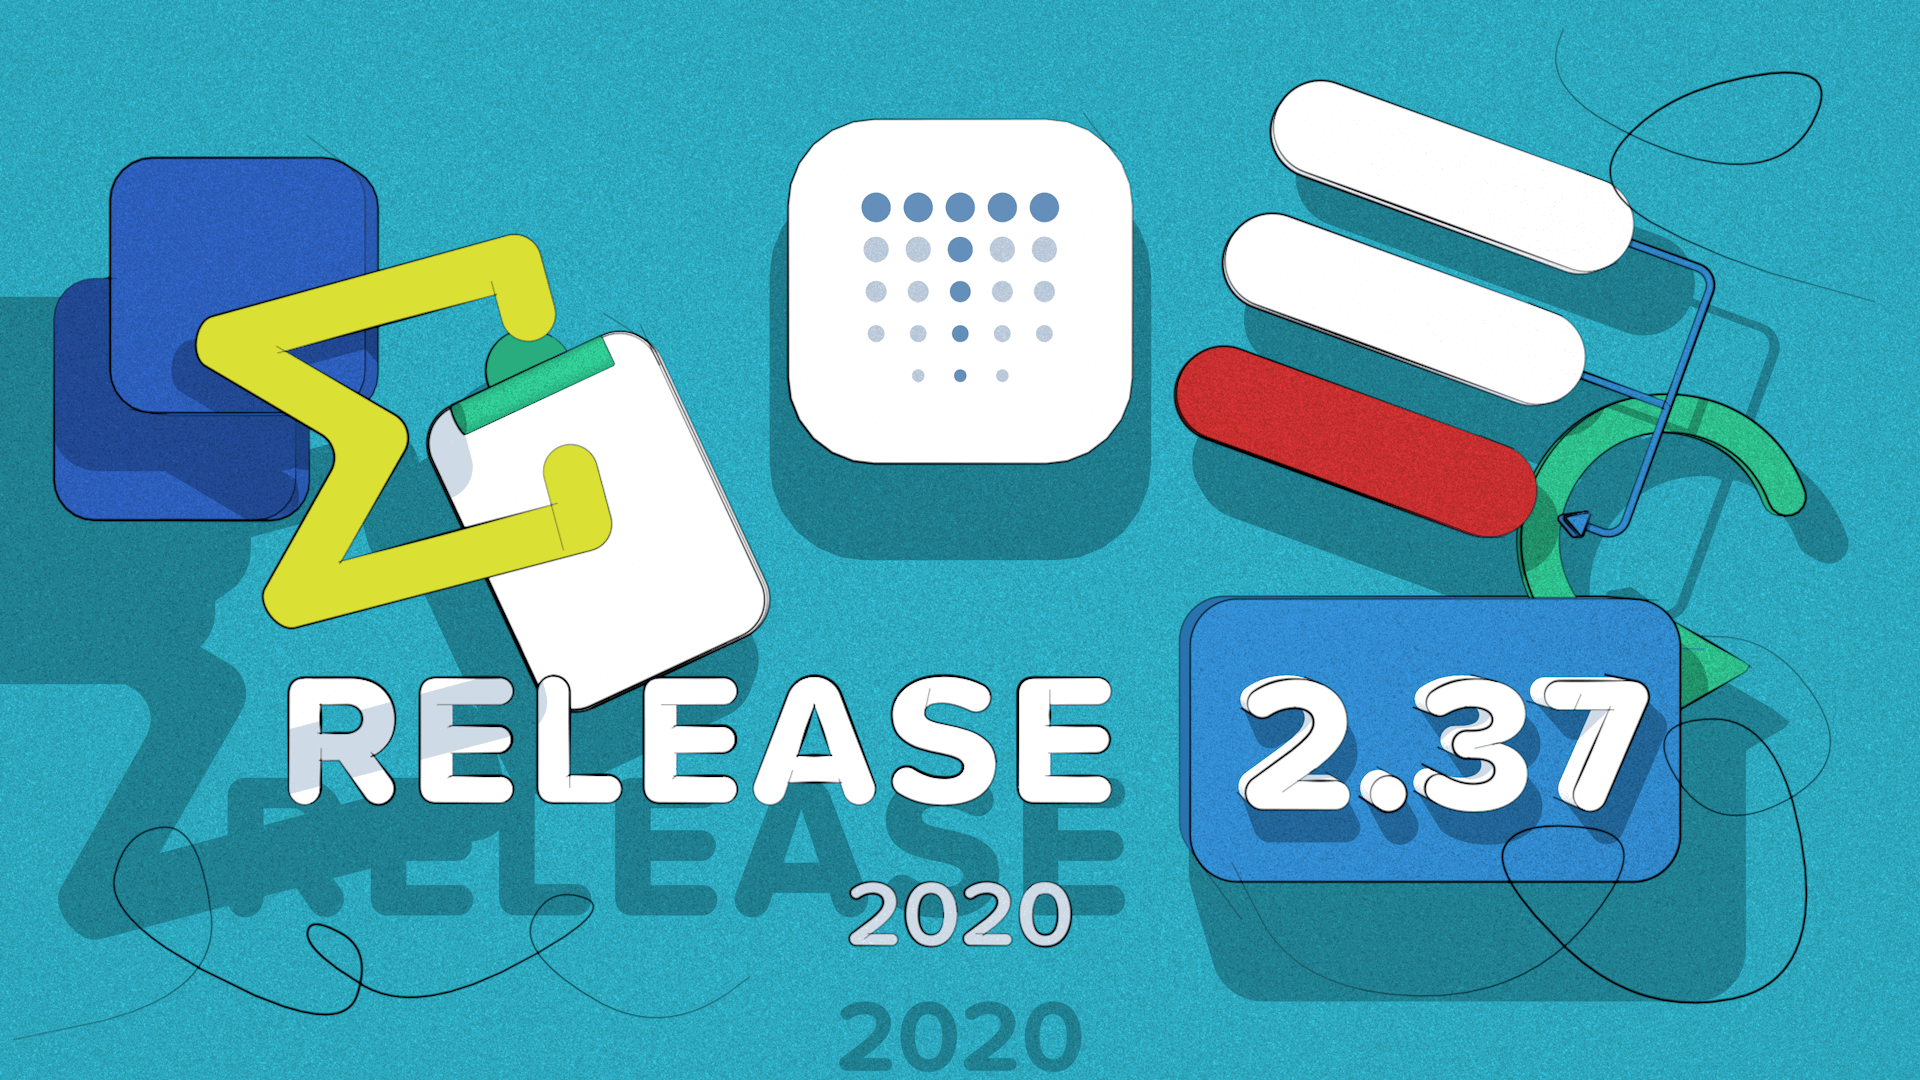 Kreo Takeoff 2.37: Release Notes